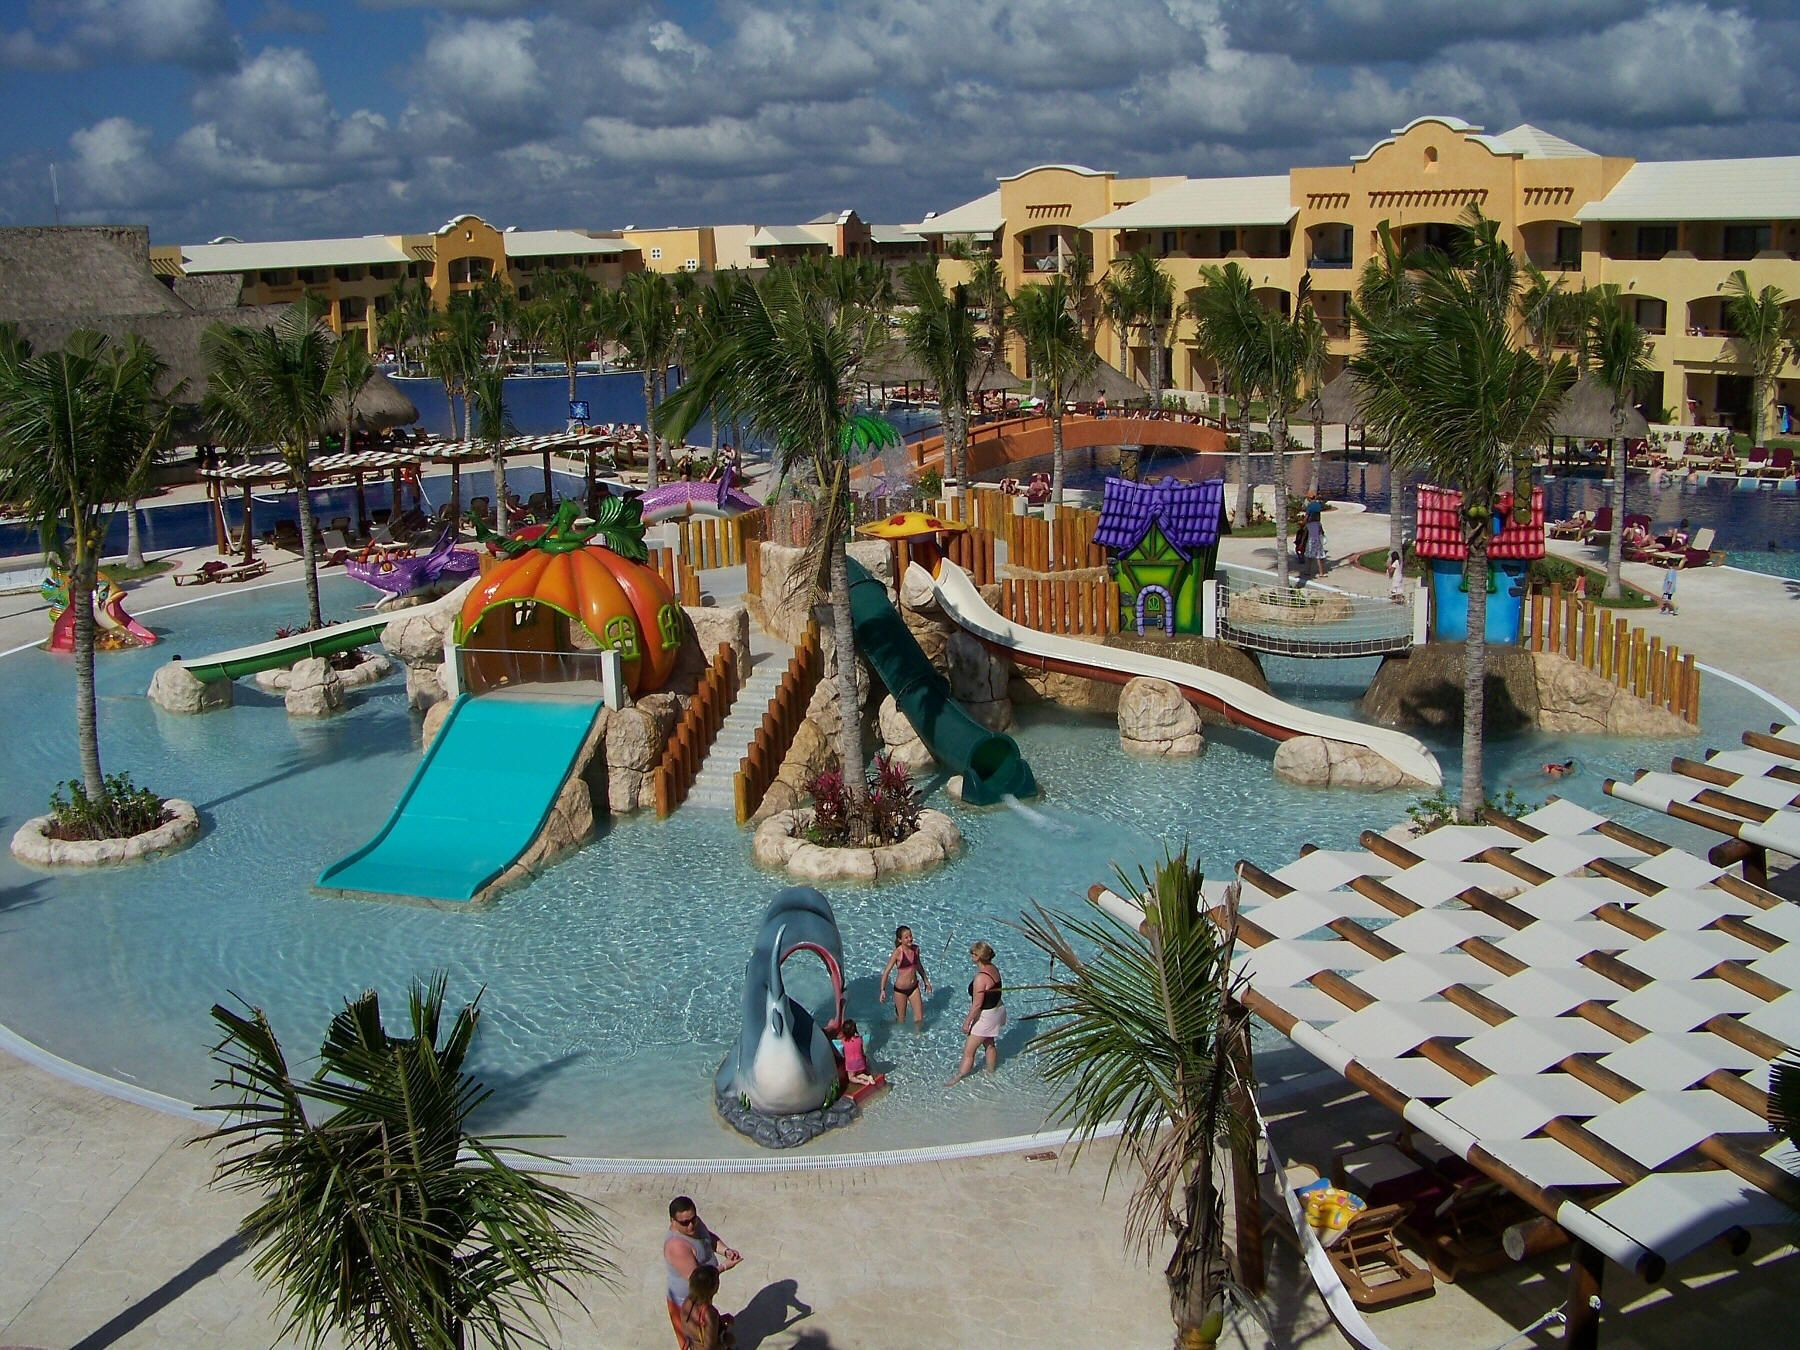 Barcelo maya palace all inclusive resort riviera maya cancun click here to book